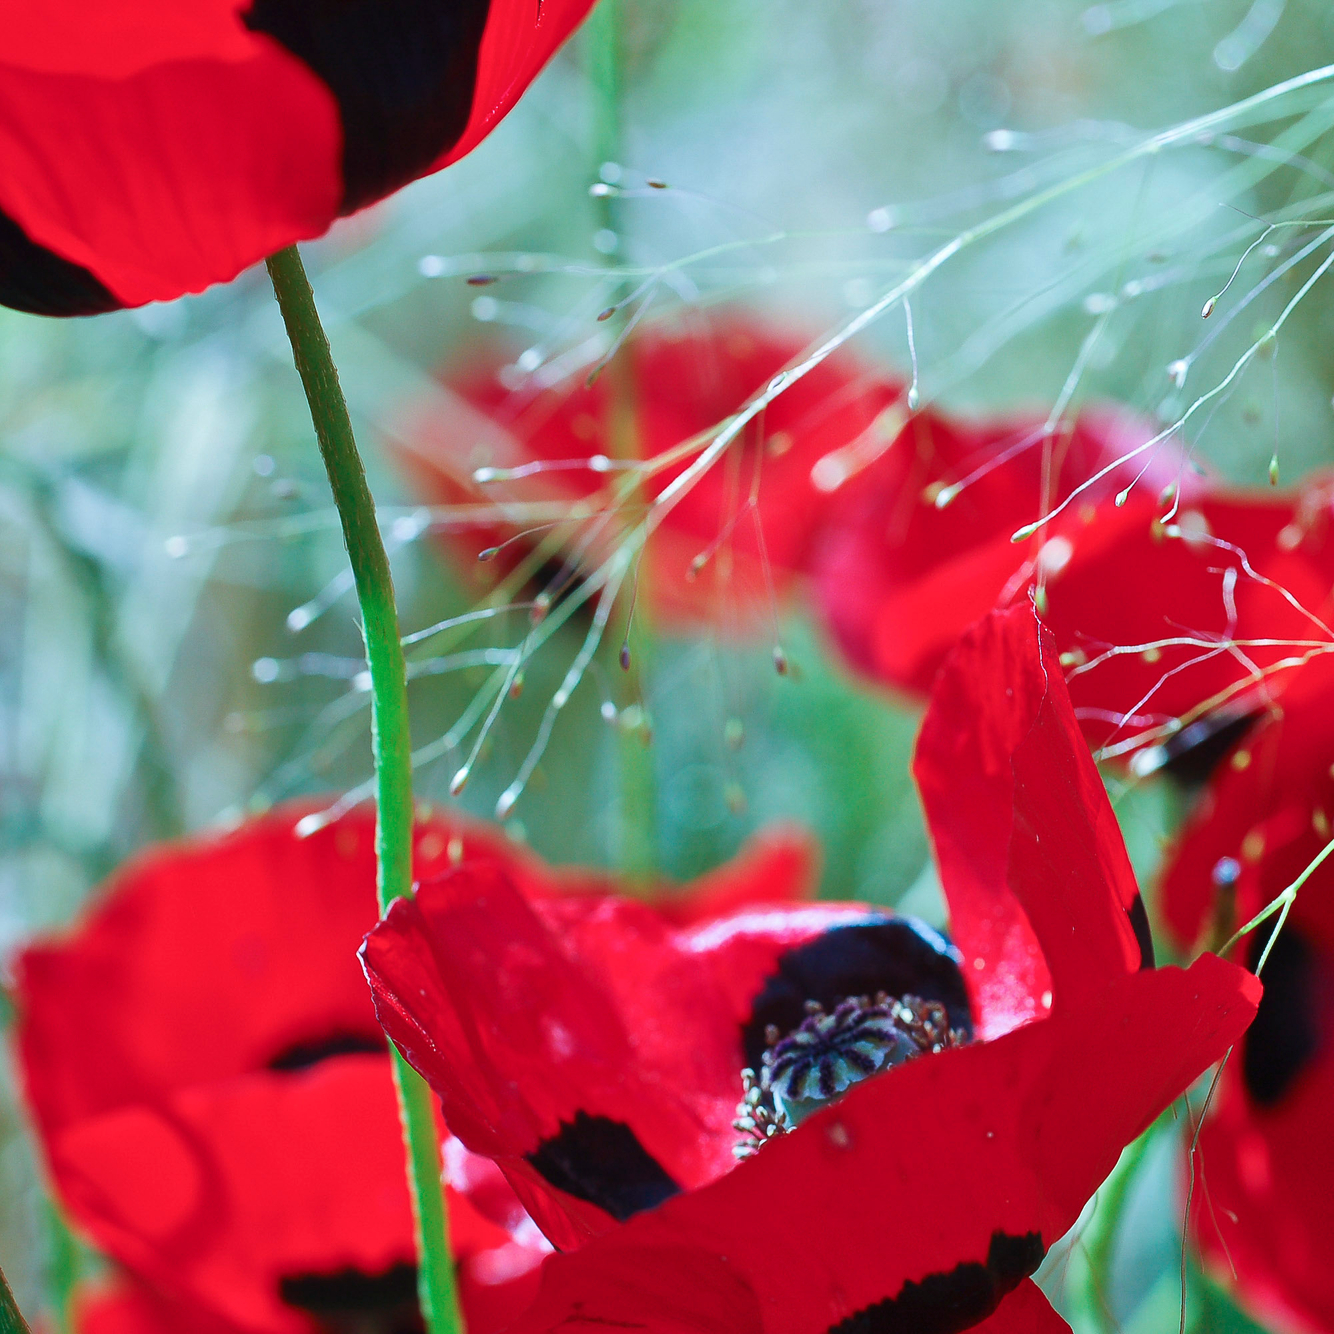 guildford_poppy_abstract.jpg